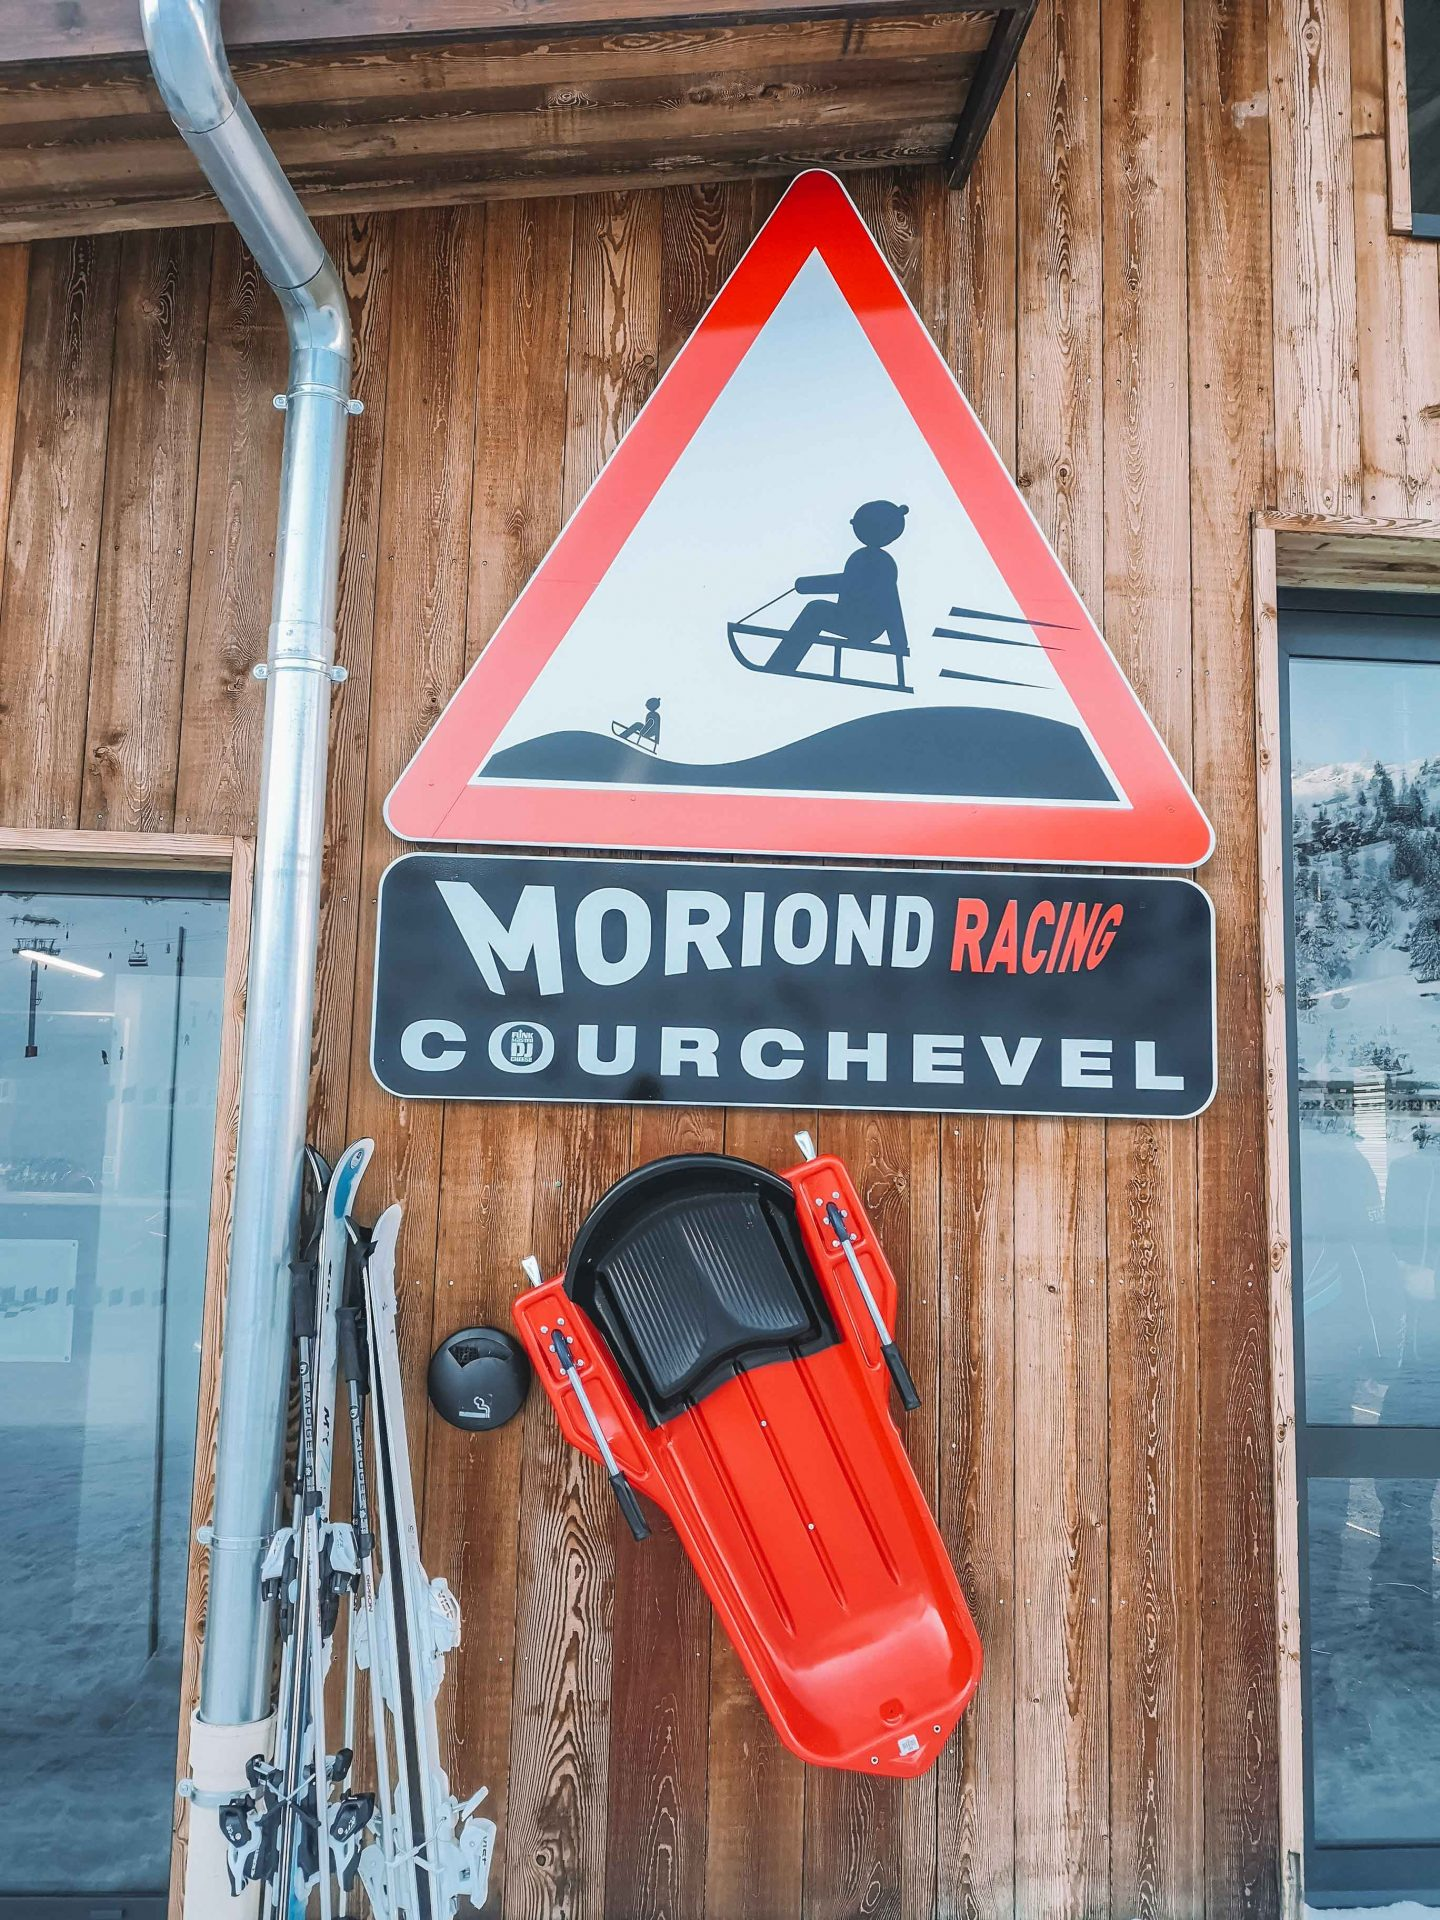 luge_moriond_racing_descente_luge_courchevel